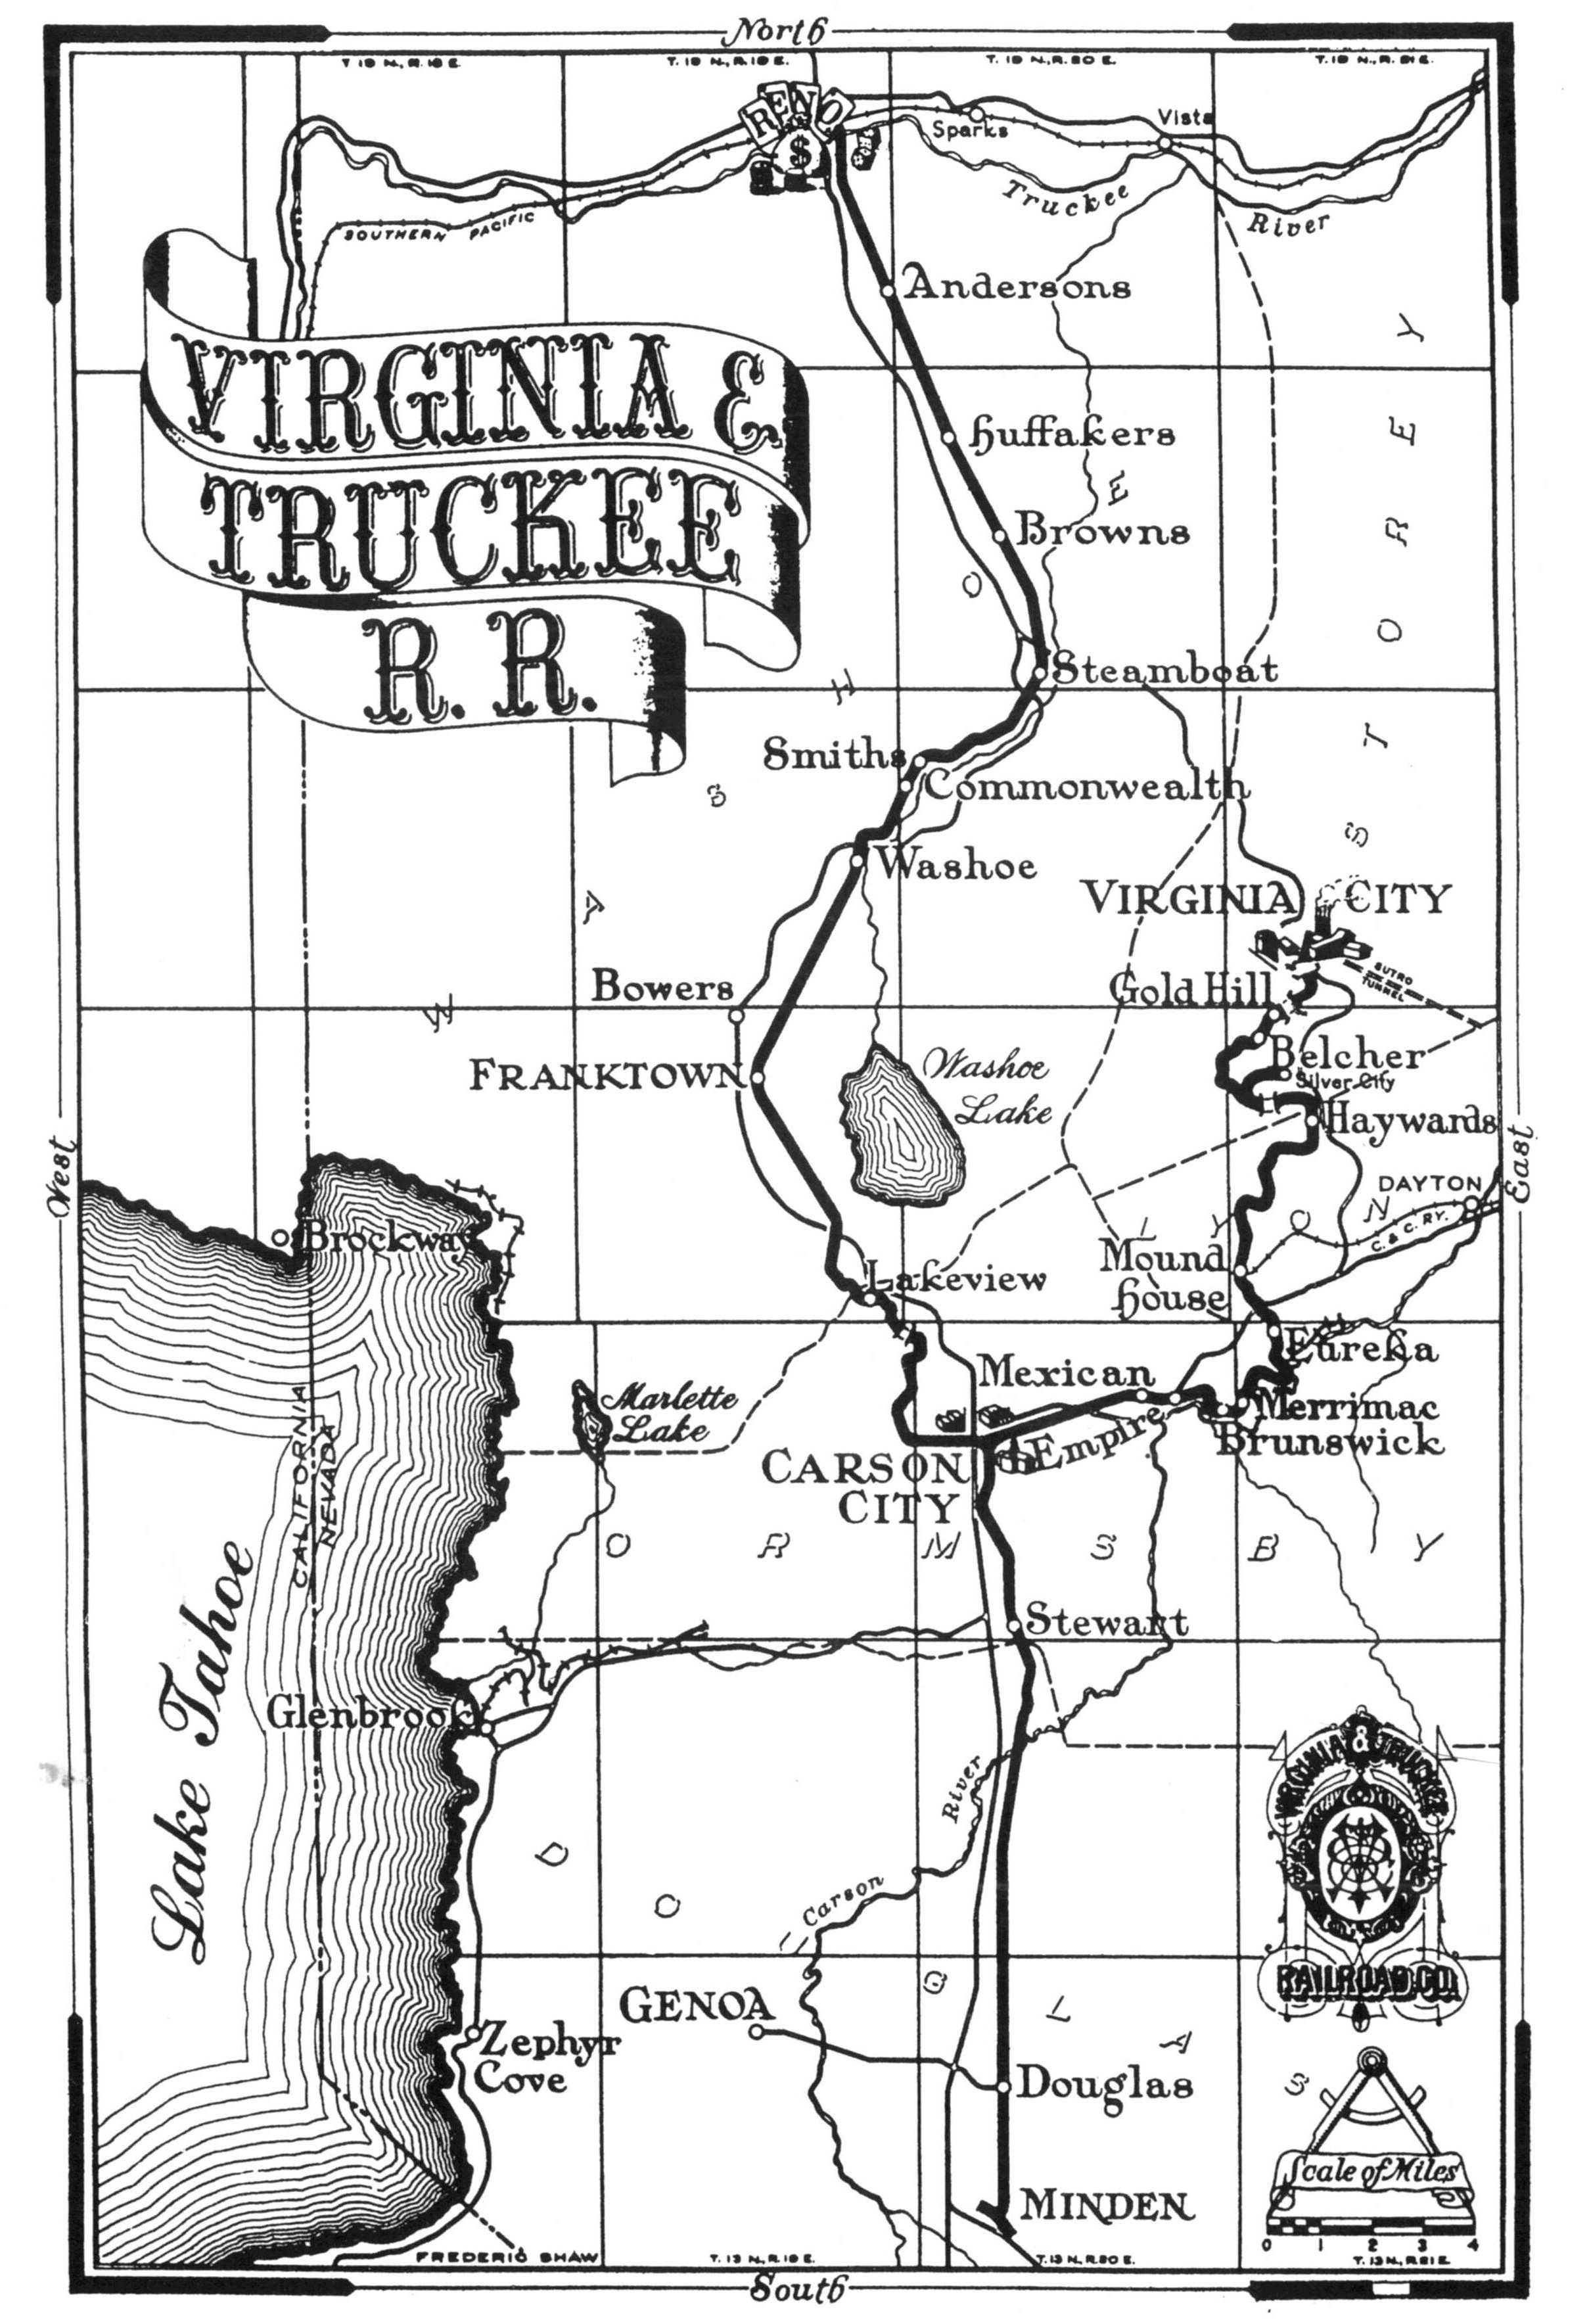 VT Route Map Photo Details The Western Nevada Historic Photo